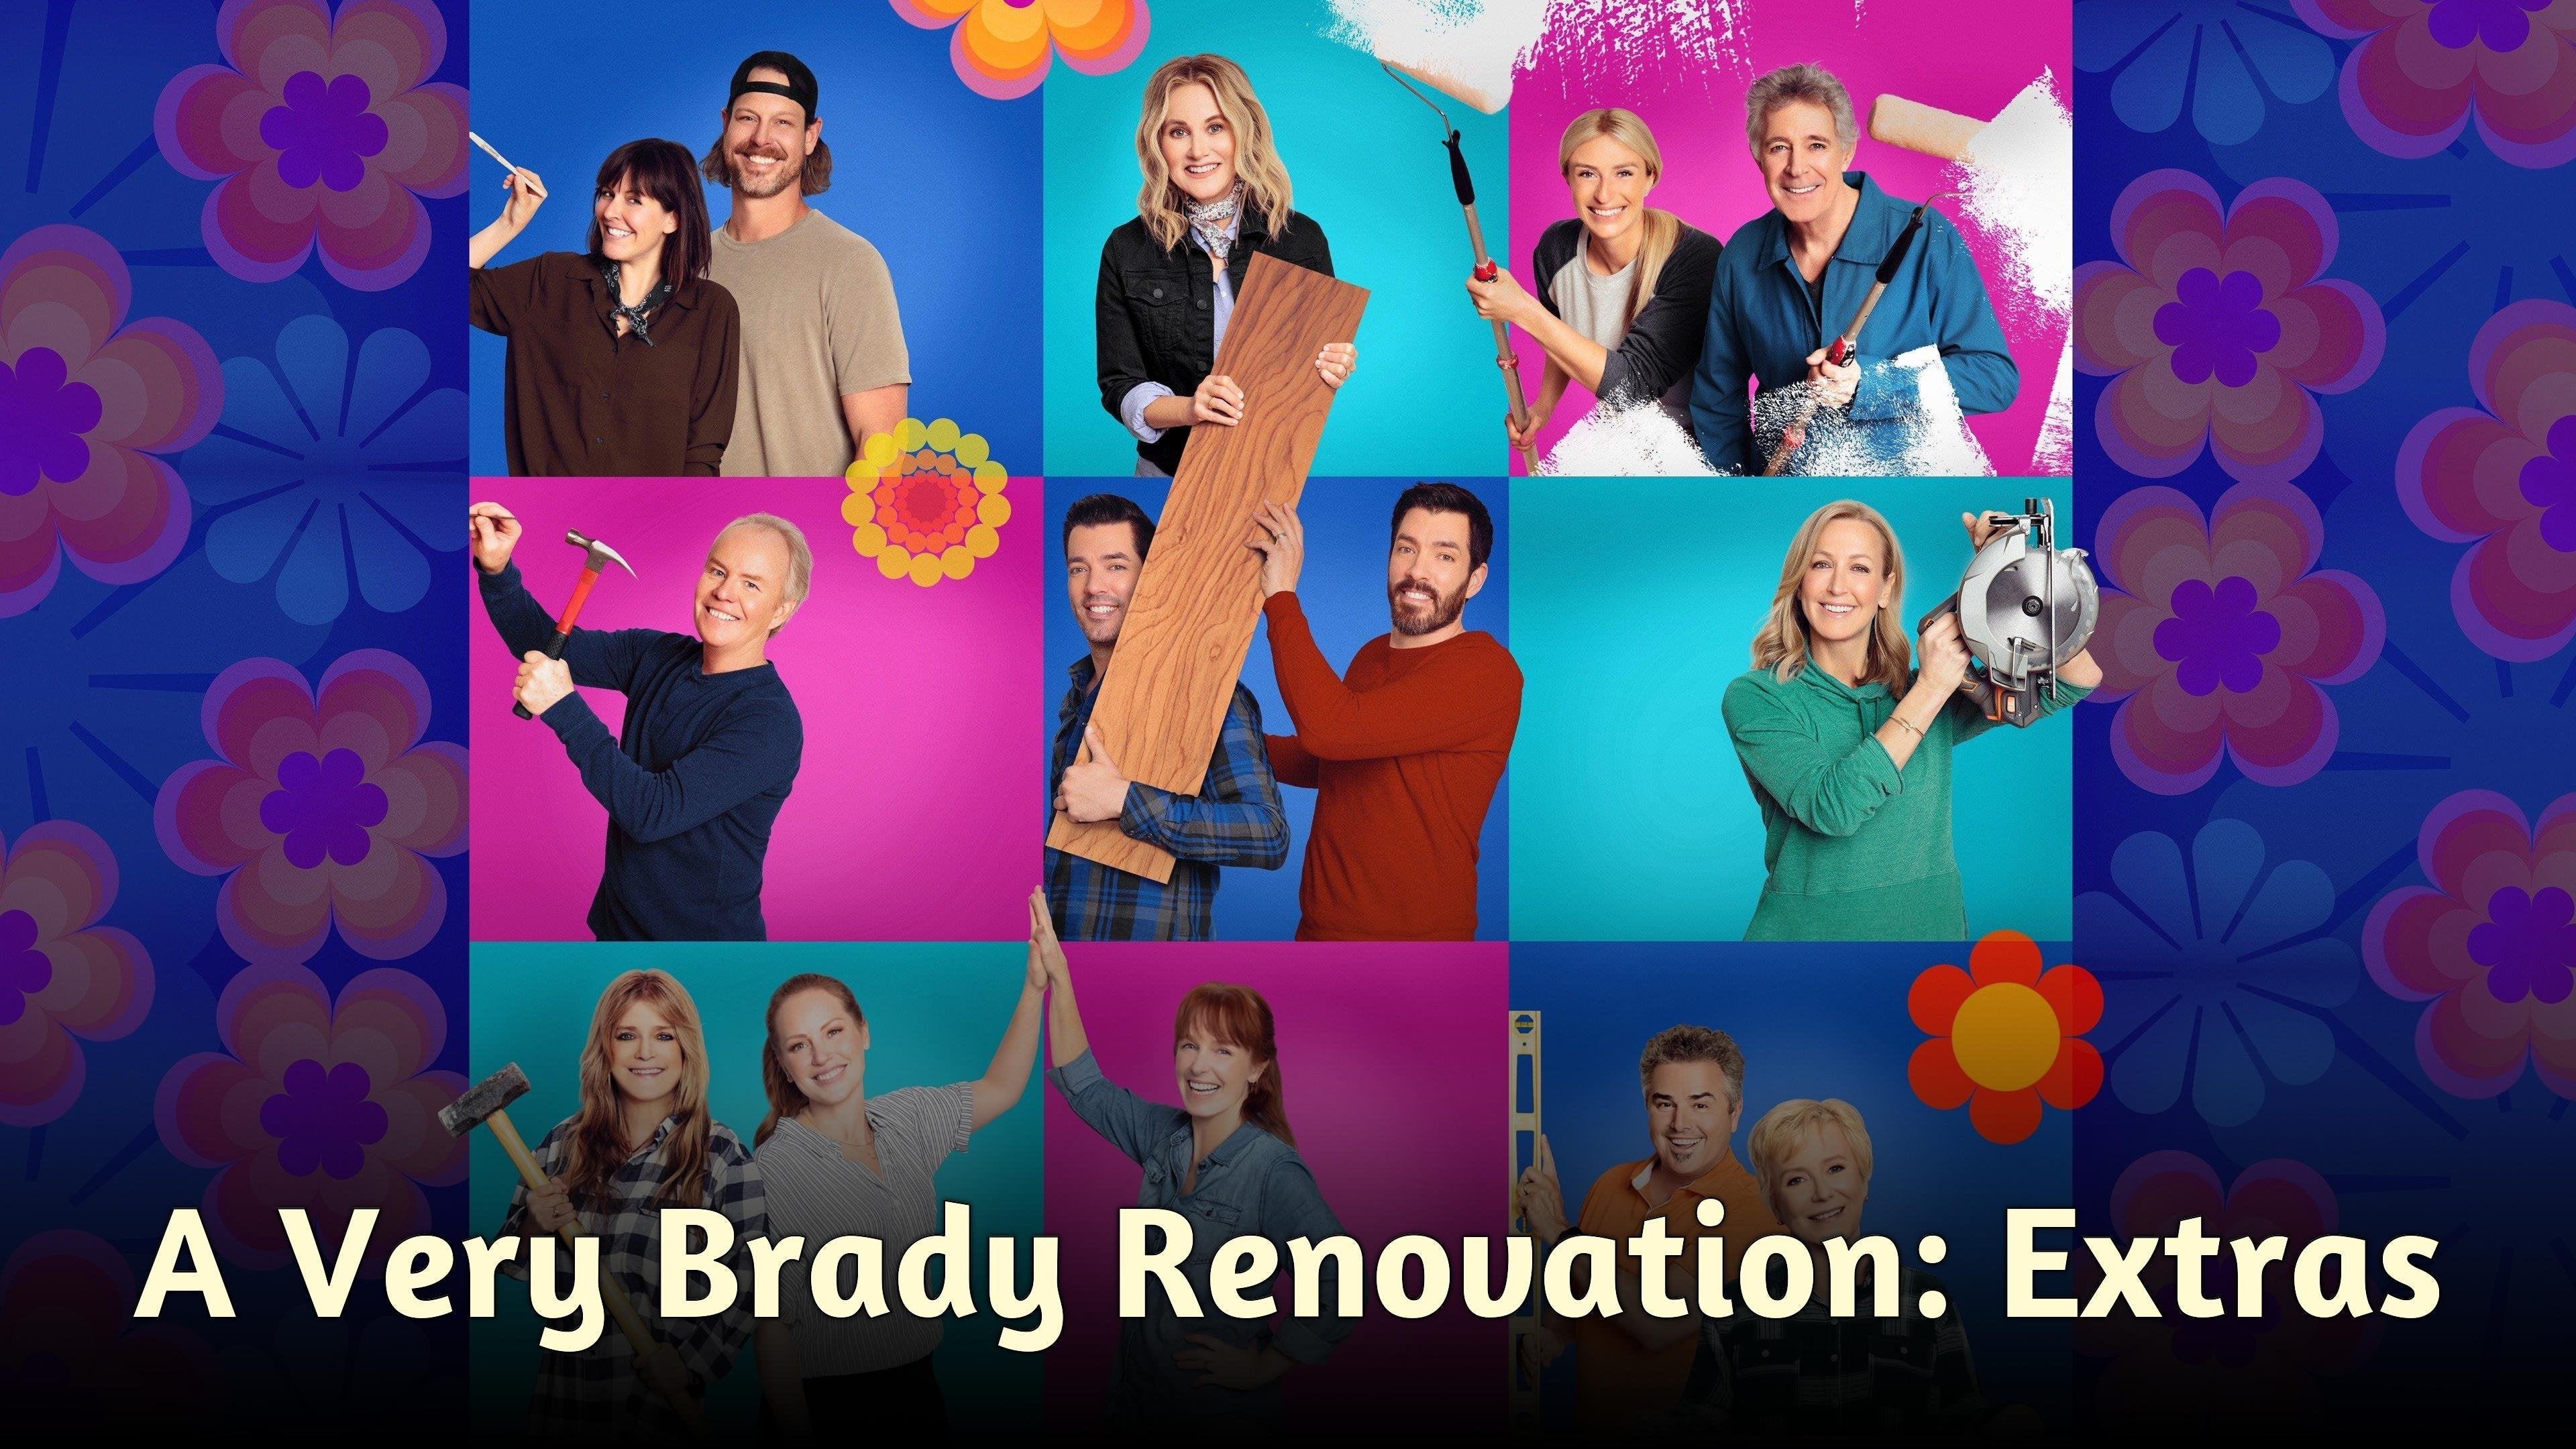 A Very Brady Renovation: Extras